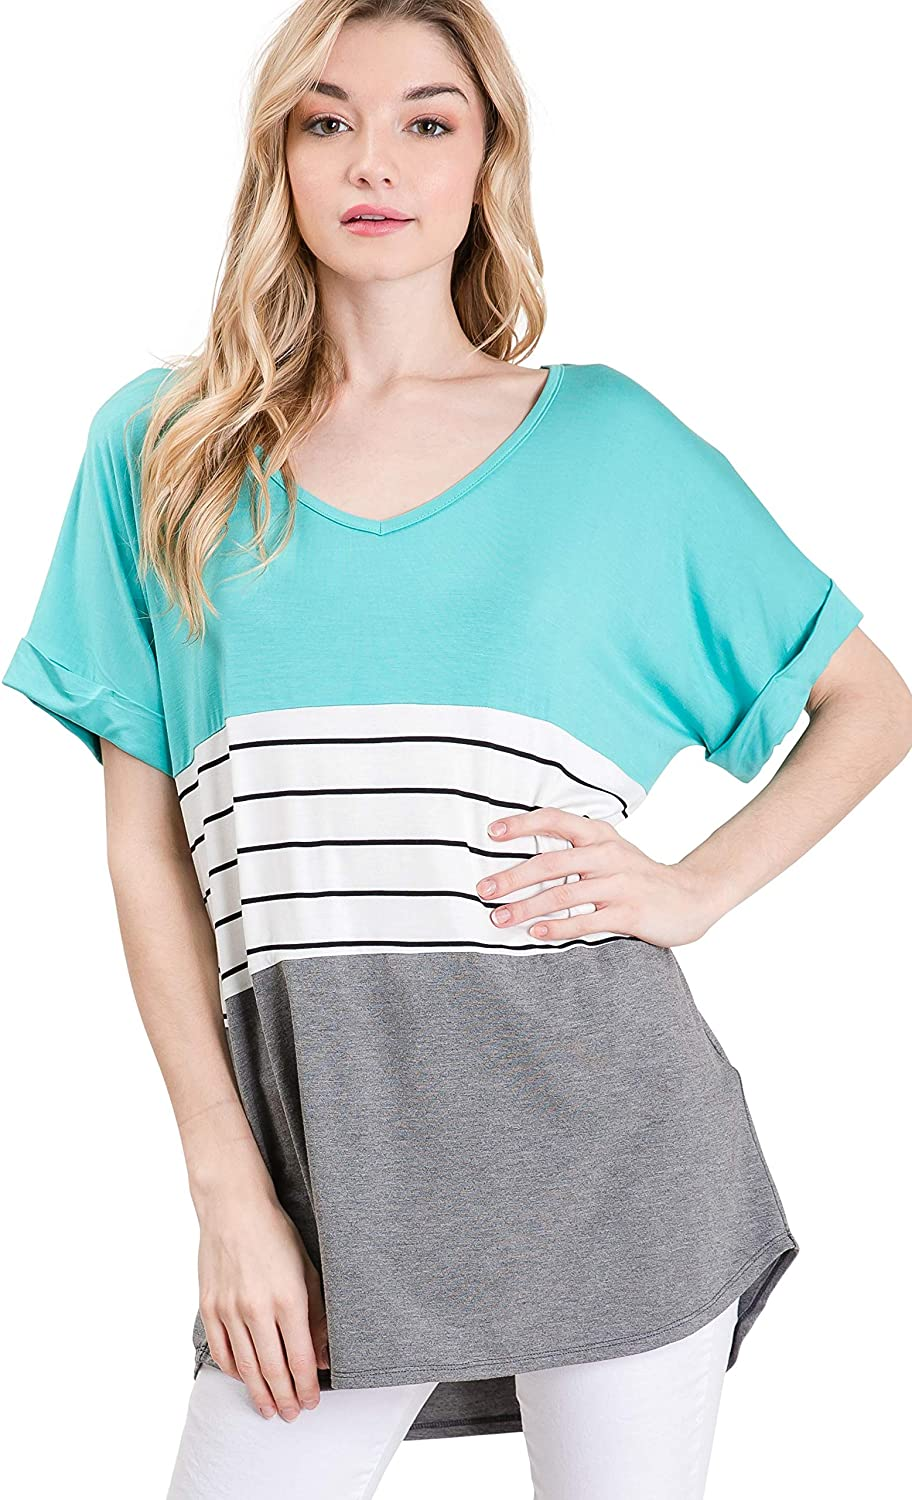 Auliné Collection Womens Oversized Color Block Short Sleeve Knit Top Shirt Tunic